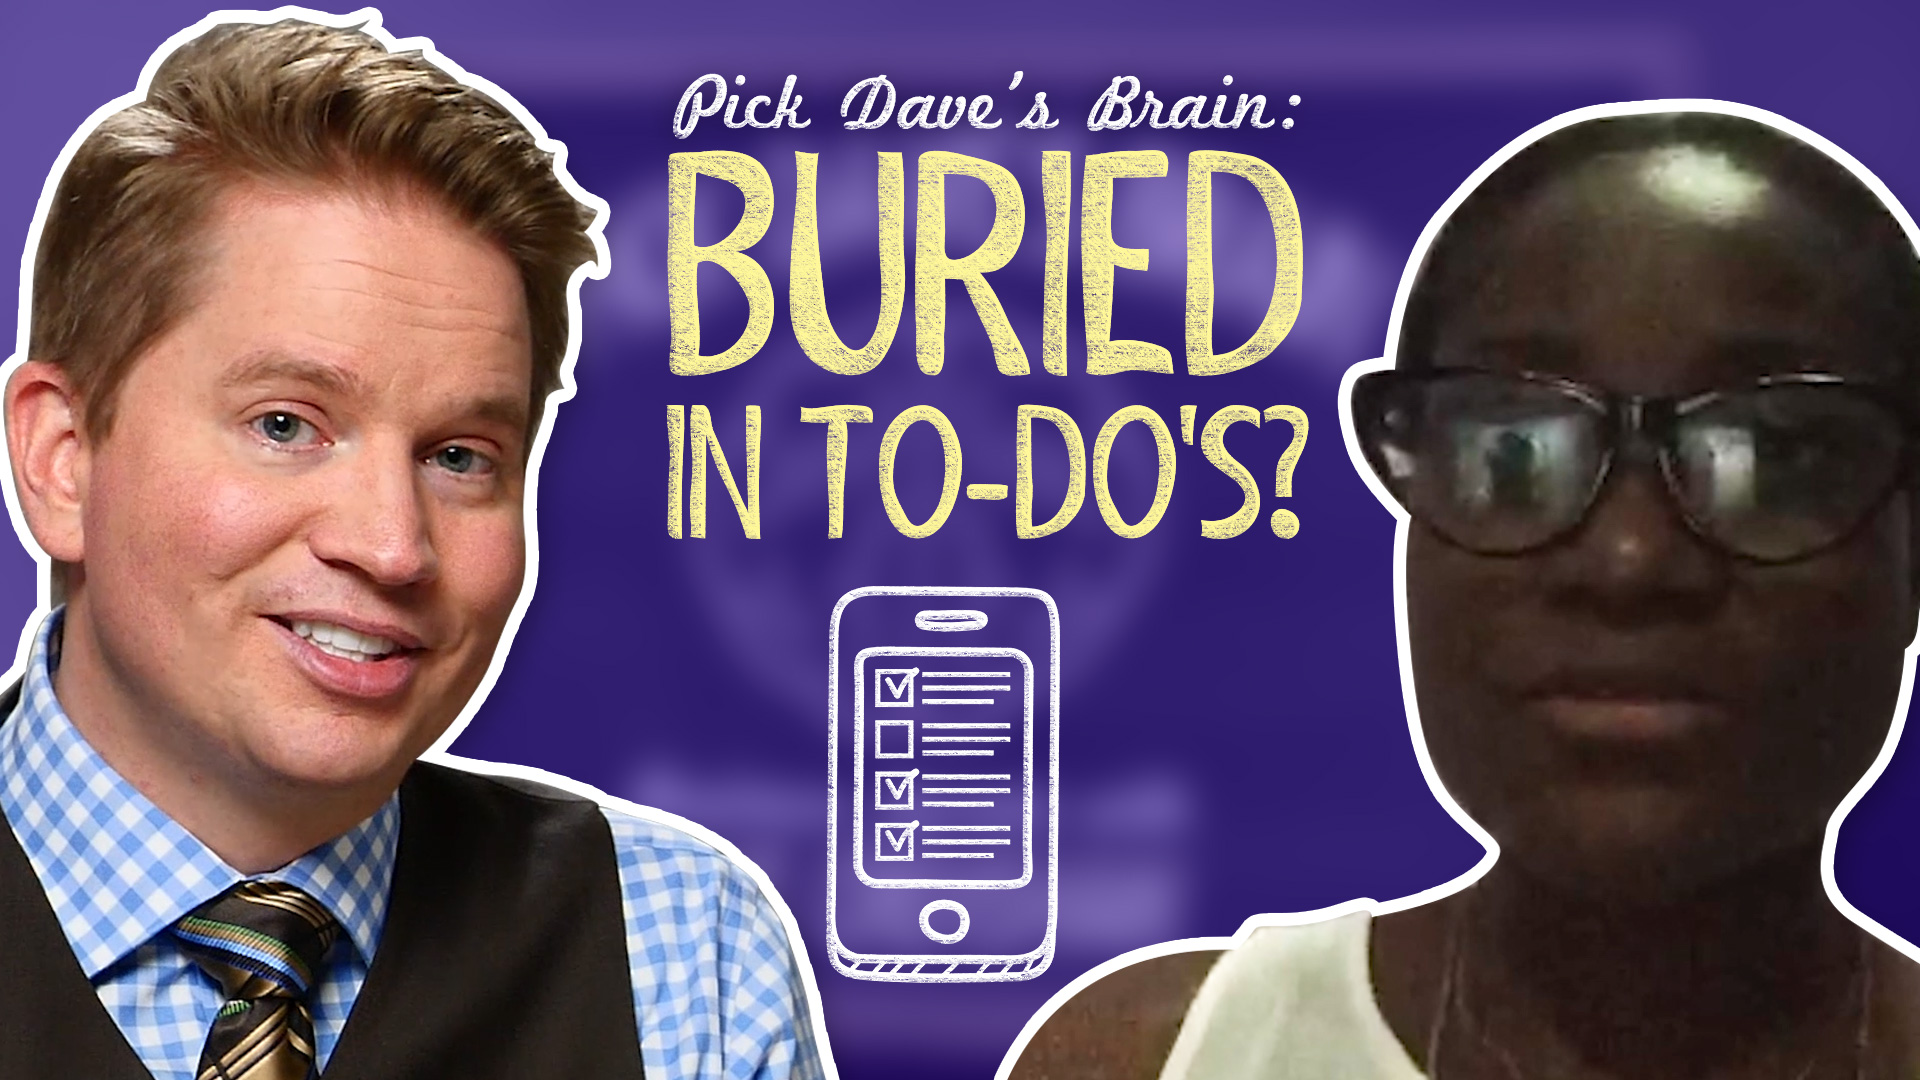 So many tasks, so little time. Here's where to start! – Pick Dave's Brain